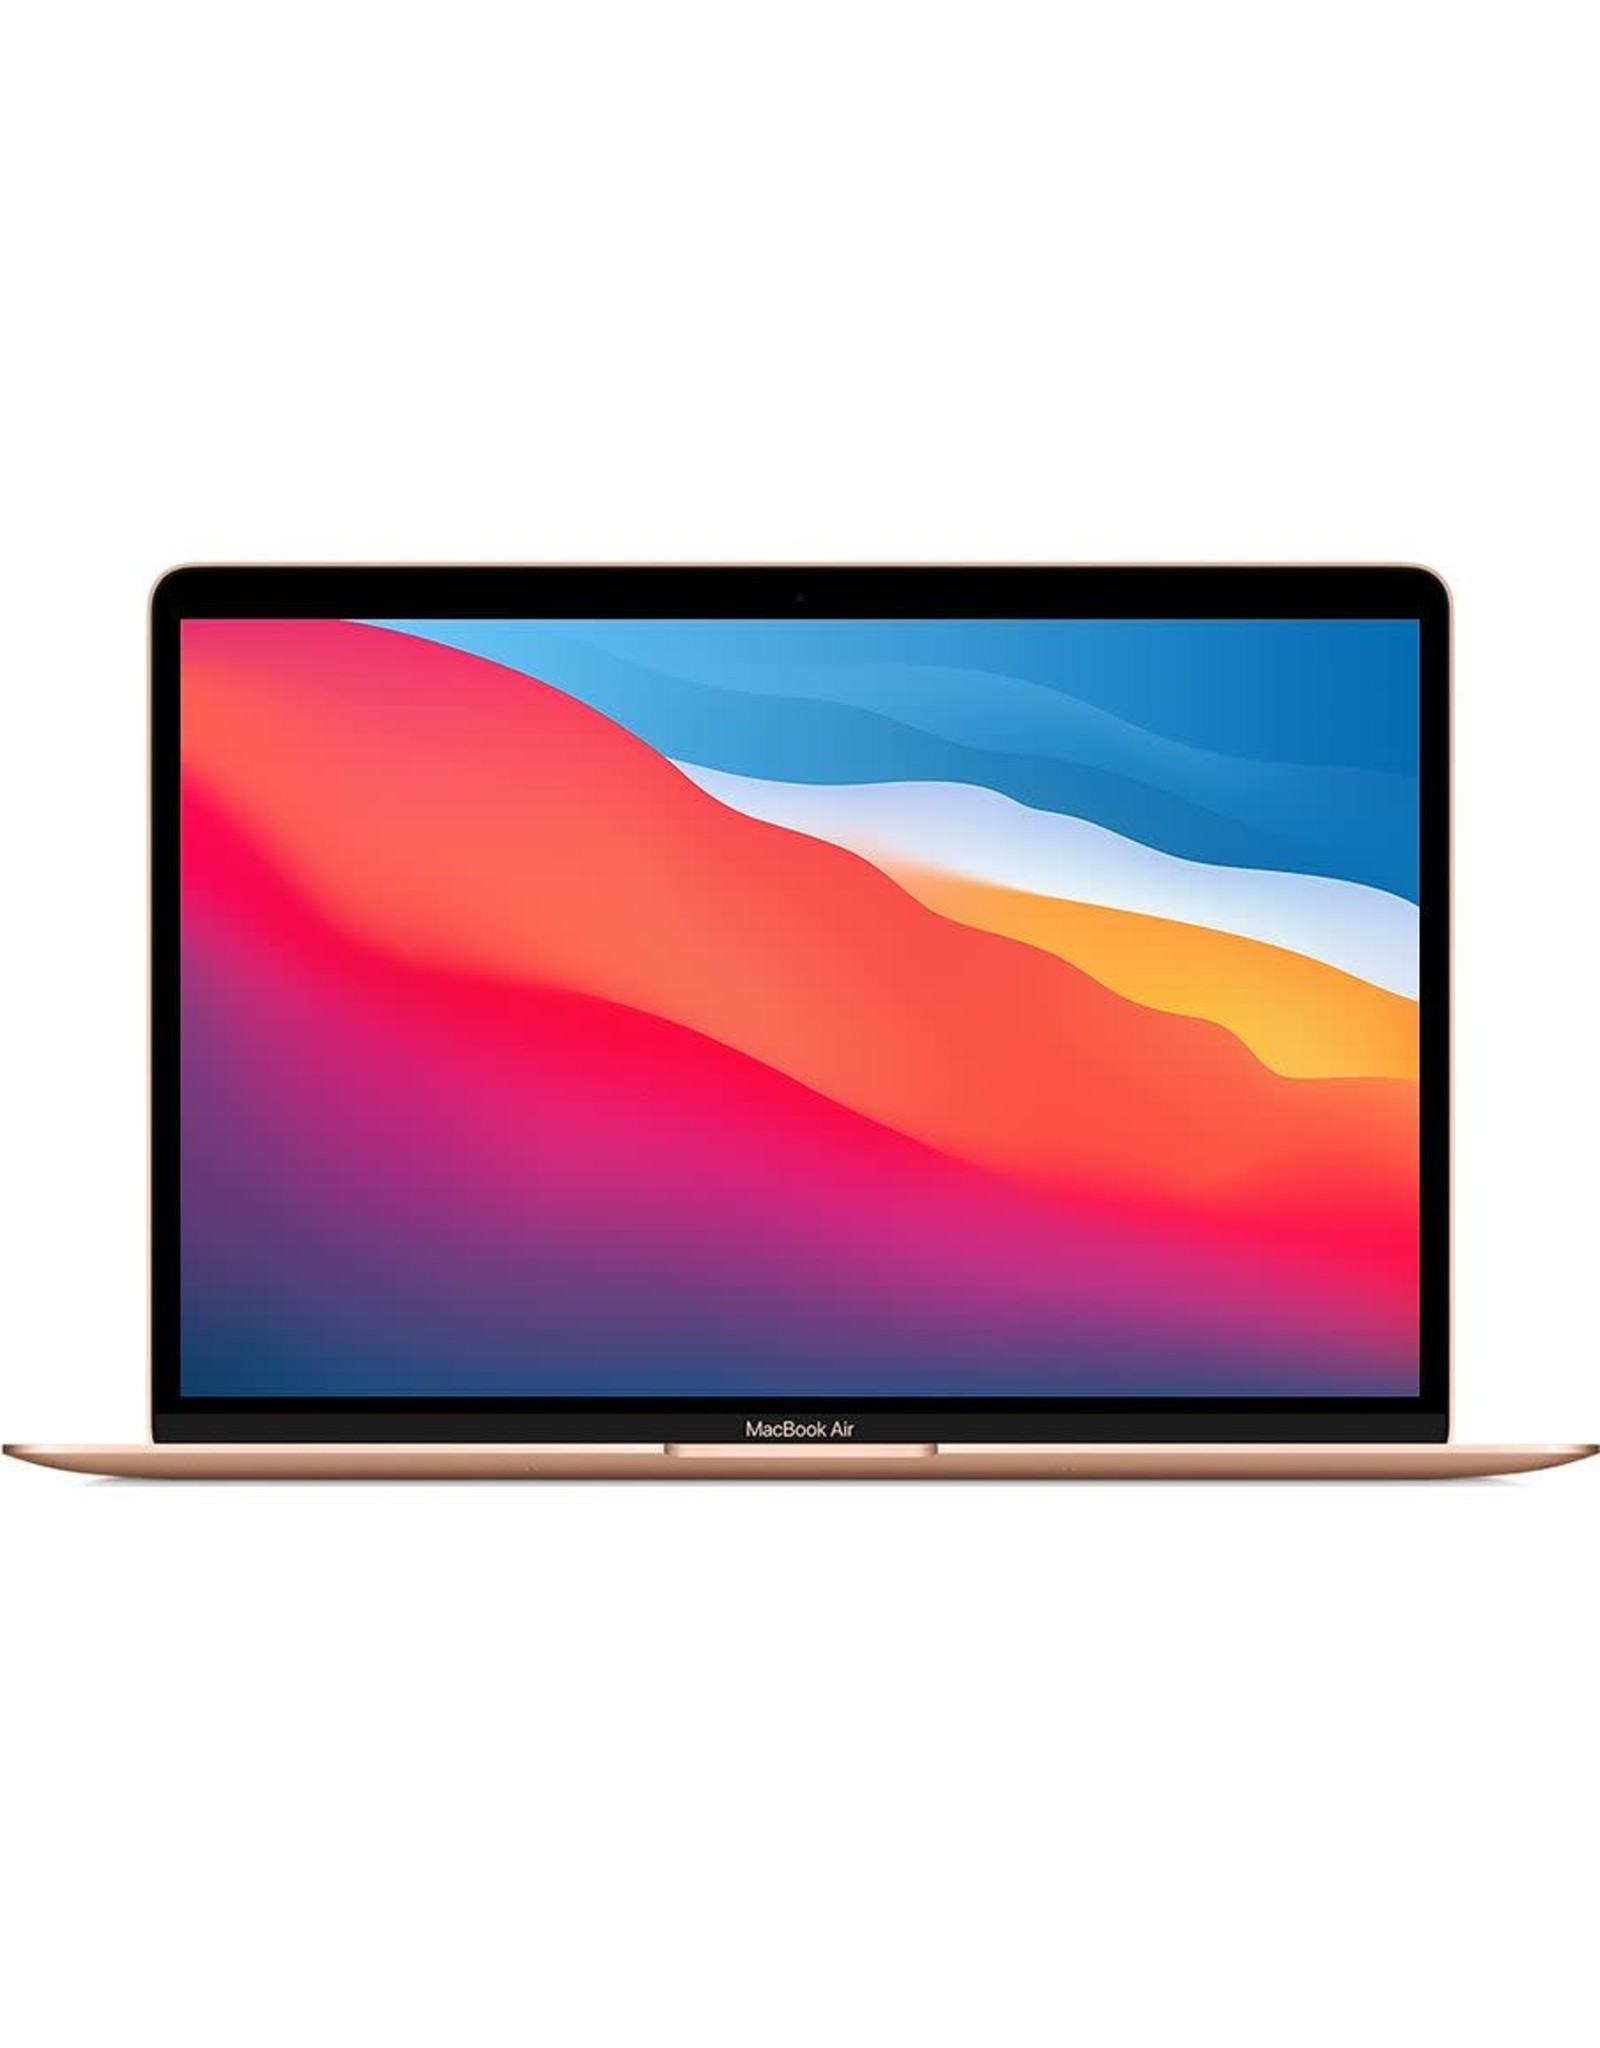 Apple Apple 13-inch MacBook Air 512GB M1 8‑Core CPU 8‑Core GPU